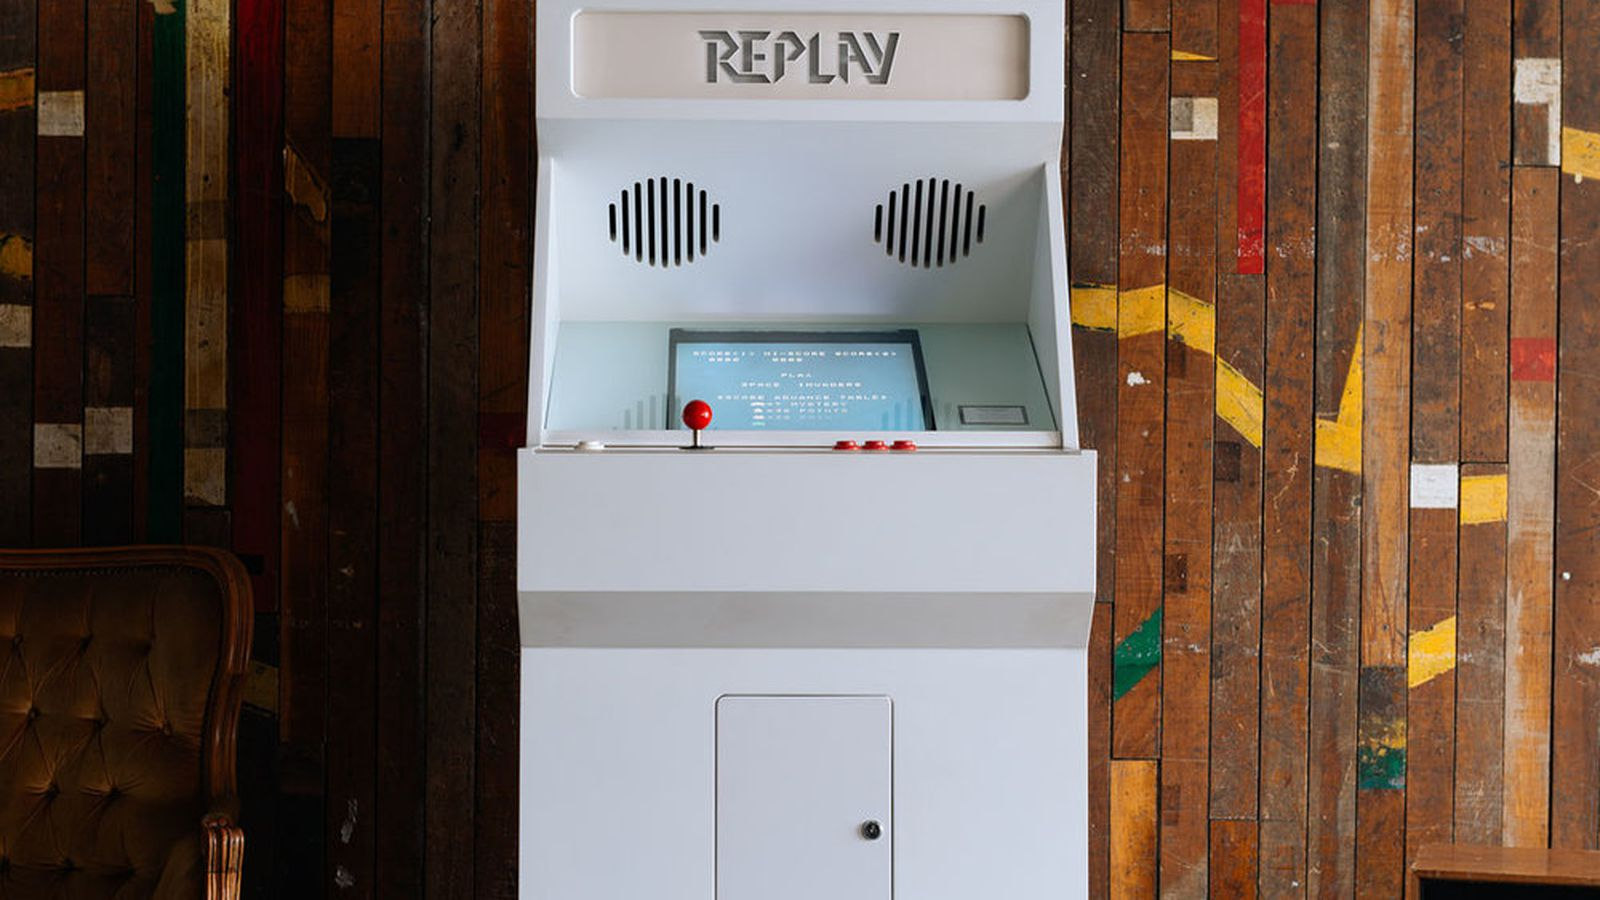 Custom arcade cabinets bring retro gaming to the modern home